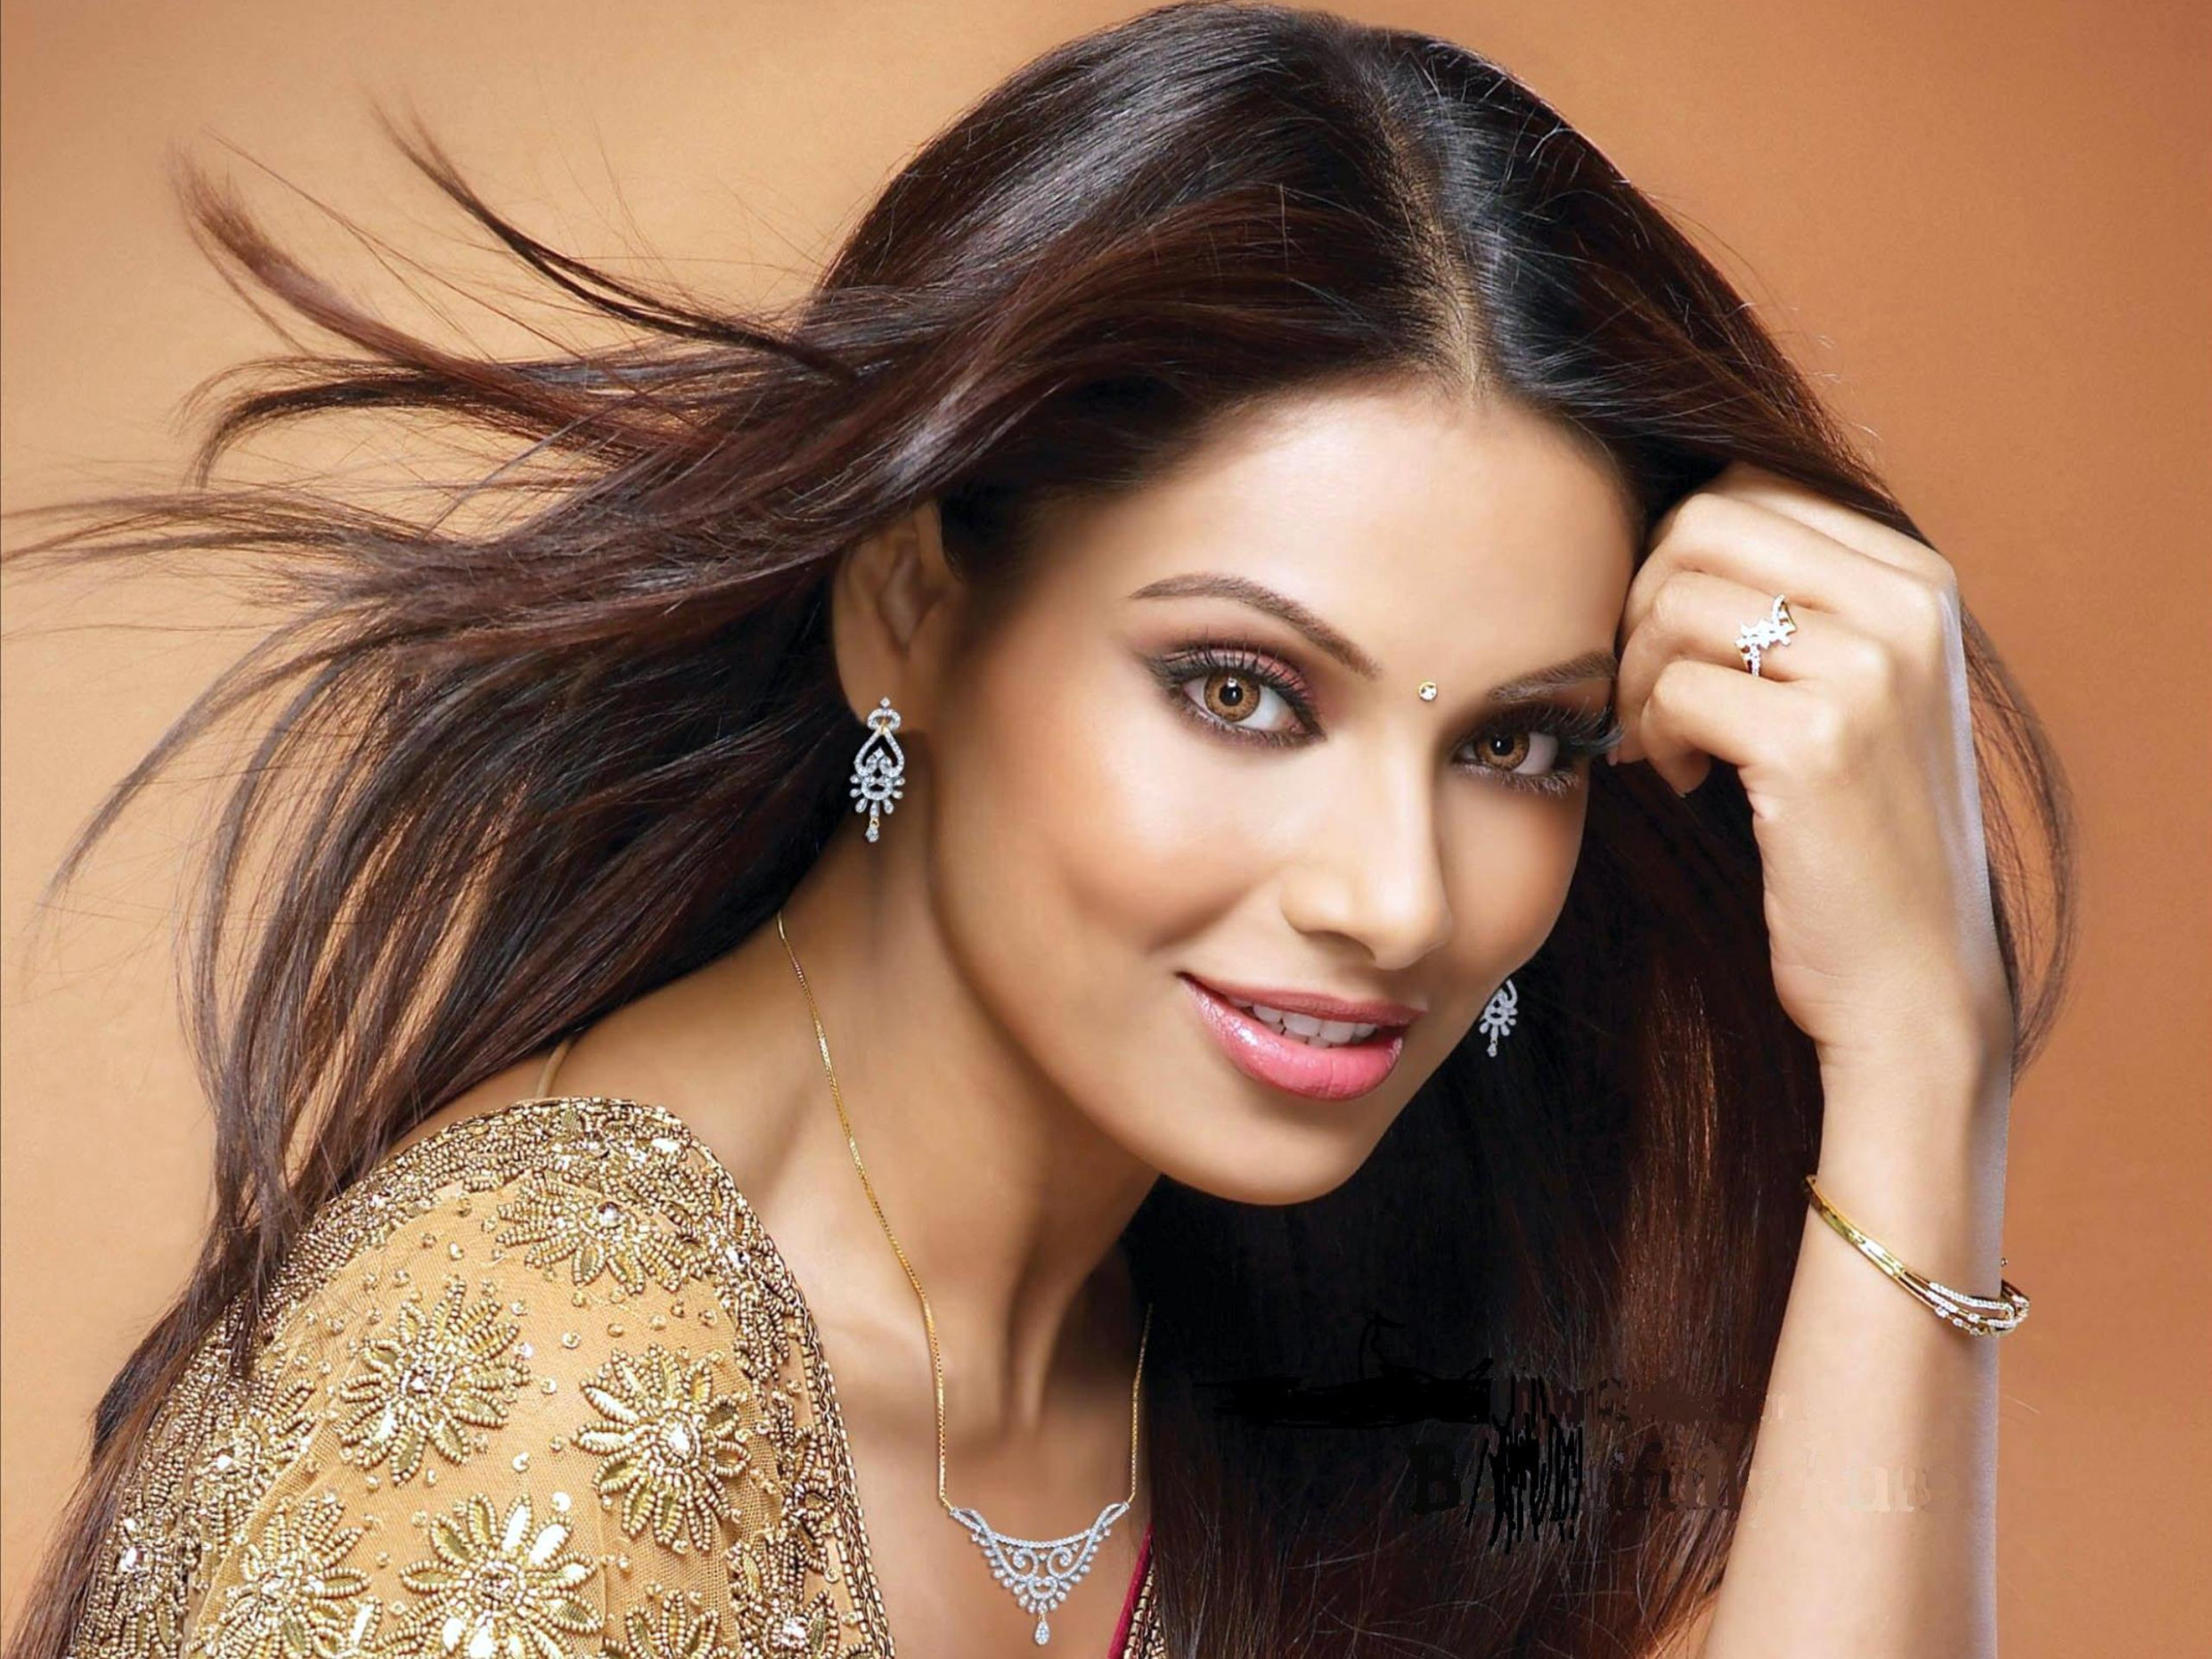 Download High Quality Wallpapers Of Bollywood Actresses ...